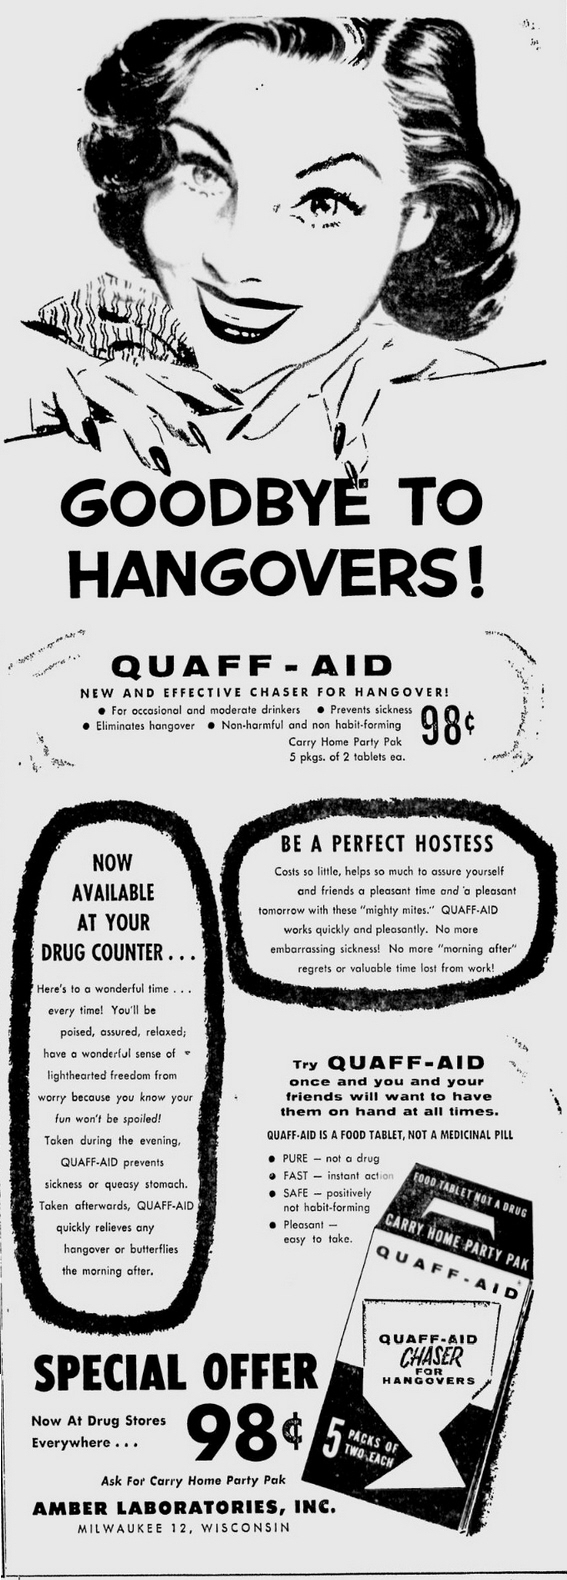 Quaff-Aid advertisement, Milwaukee Sentinel 28 June 1955